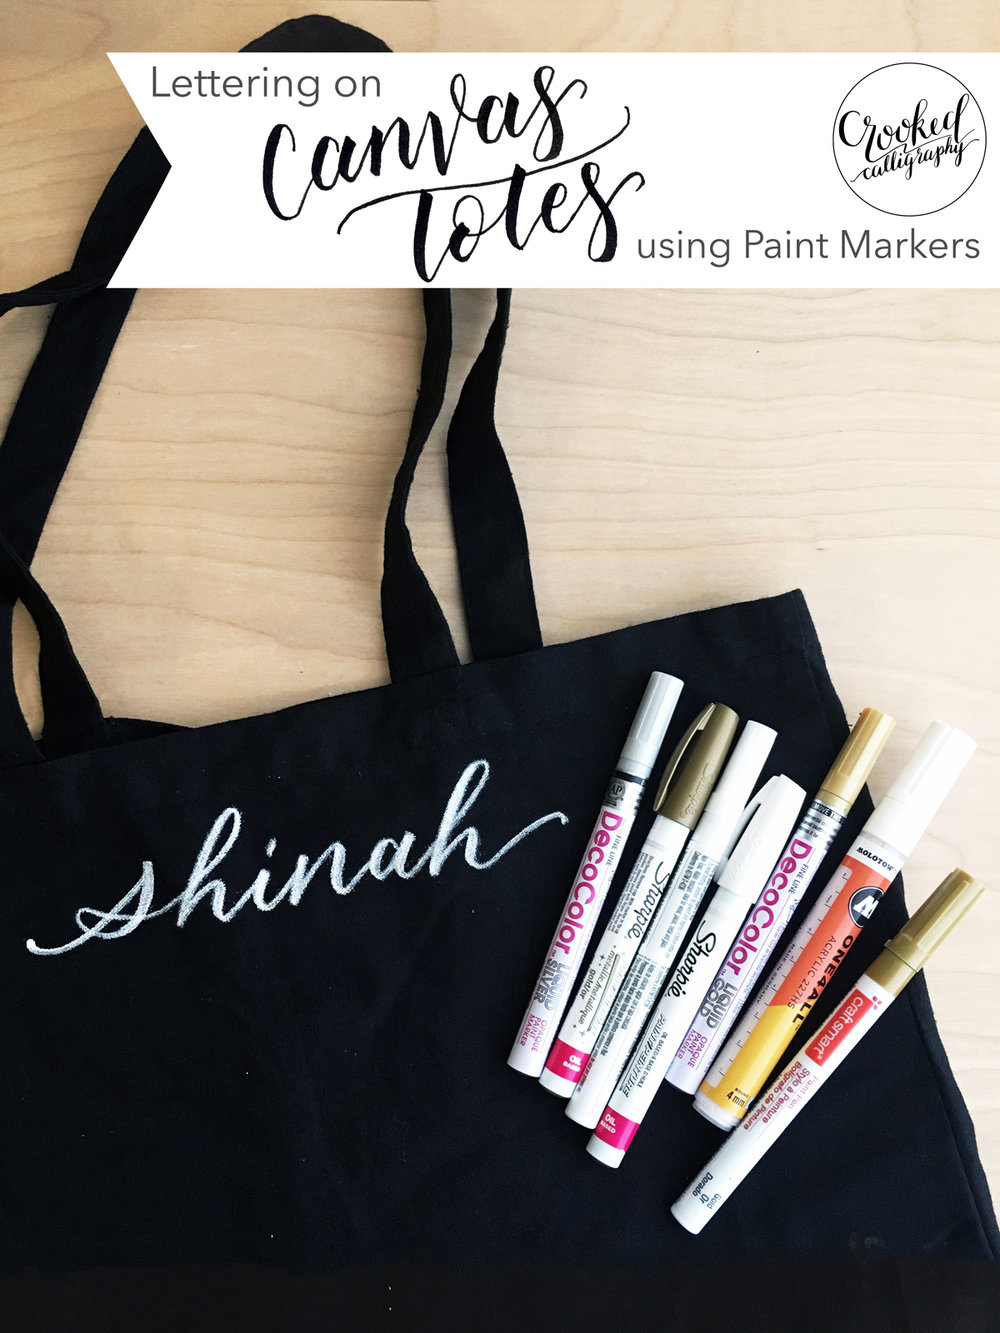 Lettering-on-Canvas-Totes.jpg